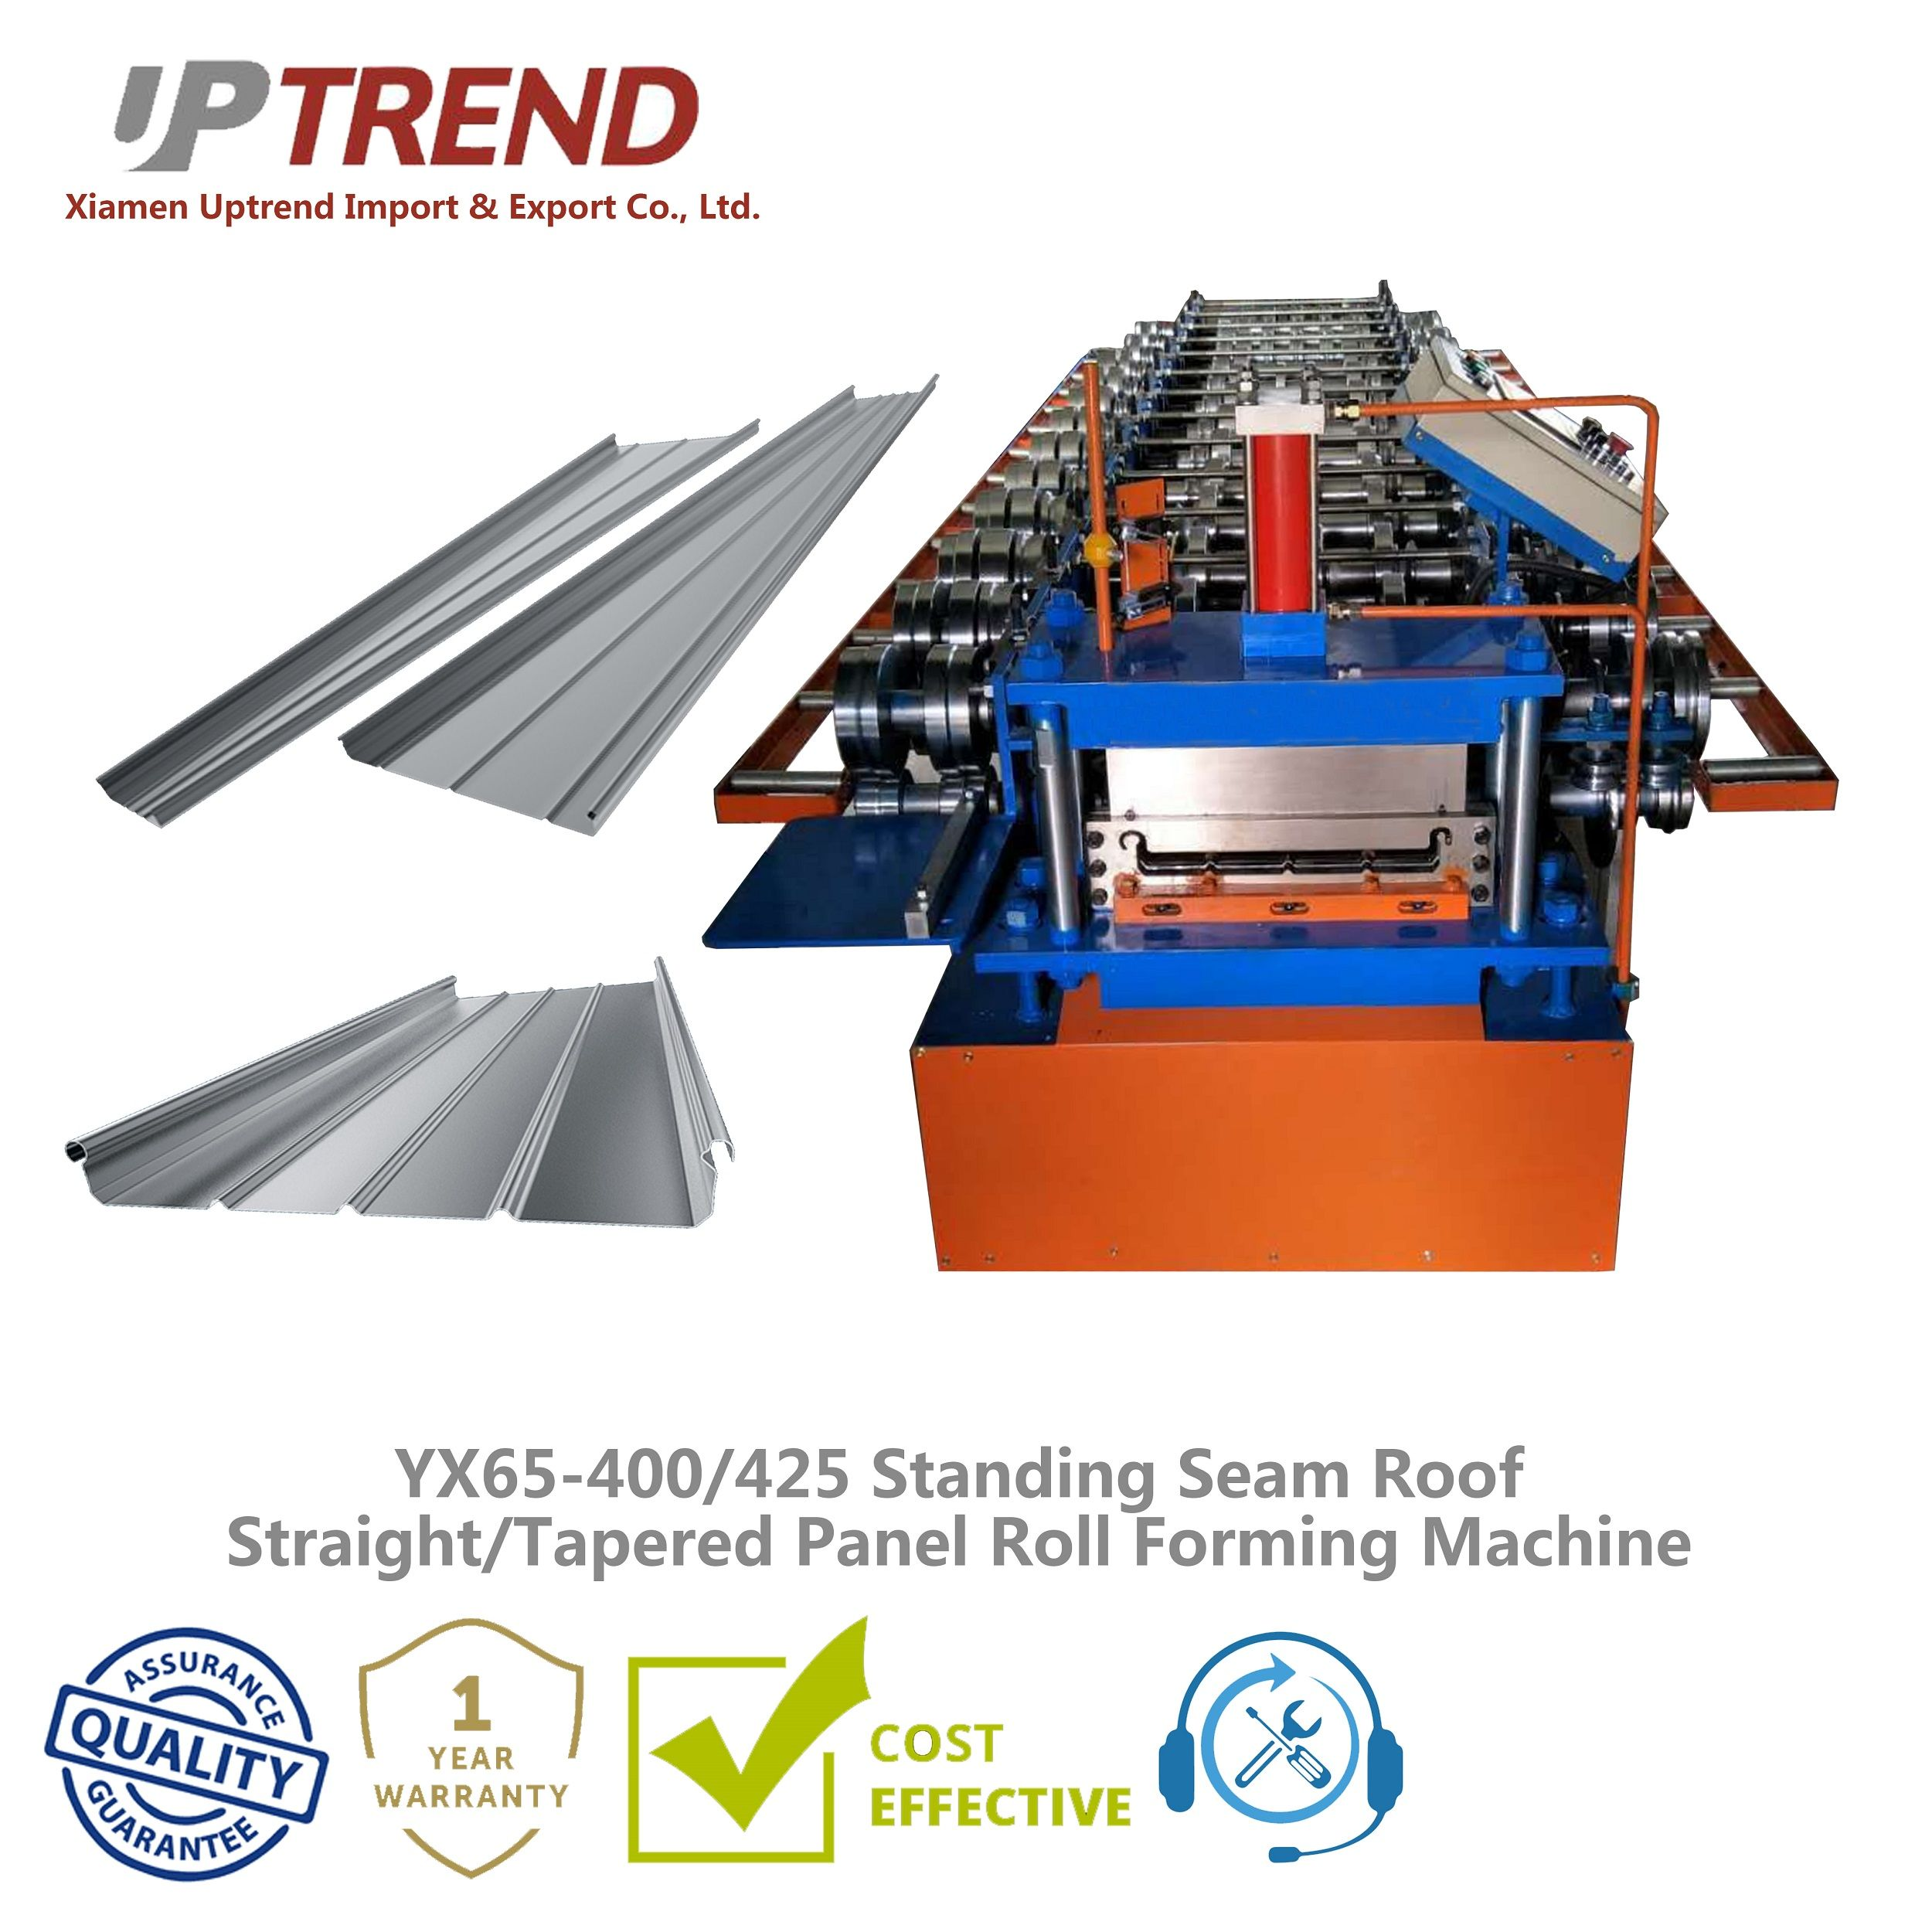 Standing Seam Roof Straight Tapered Panel Roll Forming Machine In 2020 Standing Seam Standing Seam Roof Plastic Injection Molding